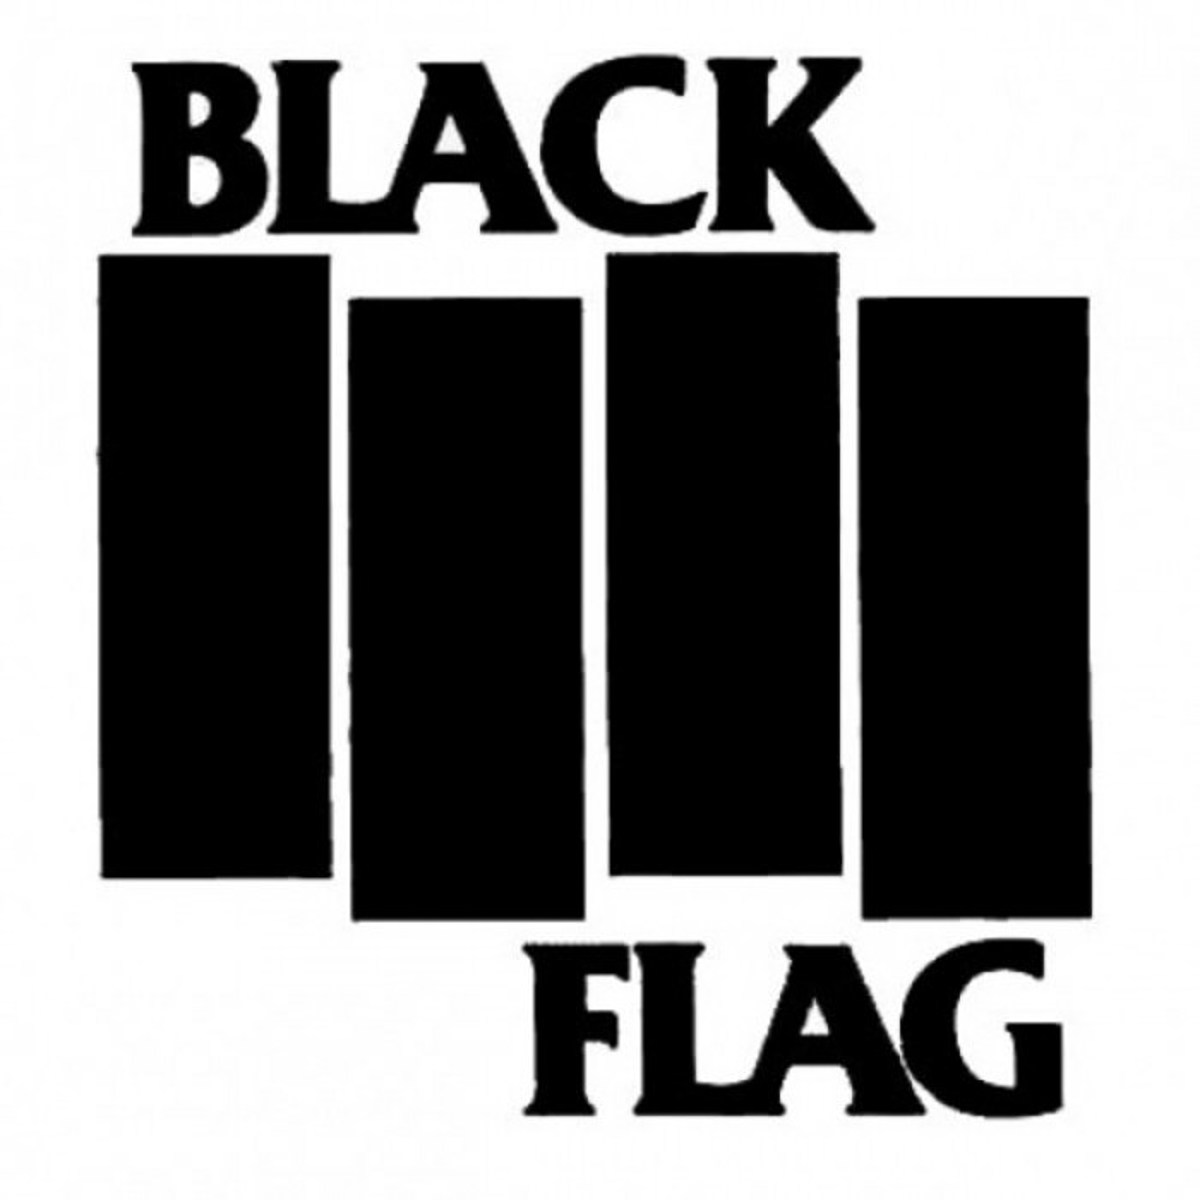 e4e28c969ee0 Black Flag Albums and EPs Ranked Worst To Best